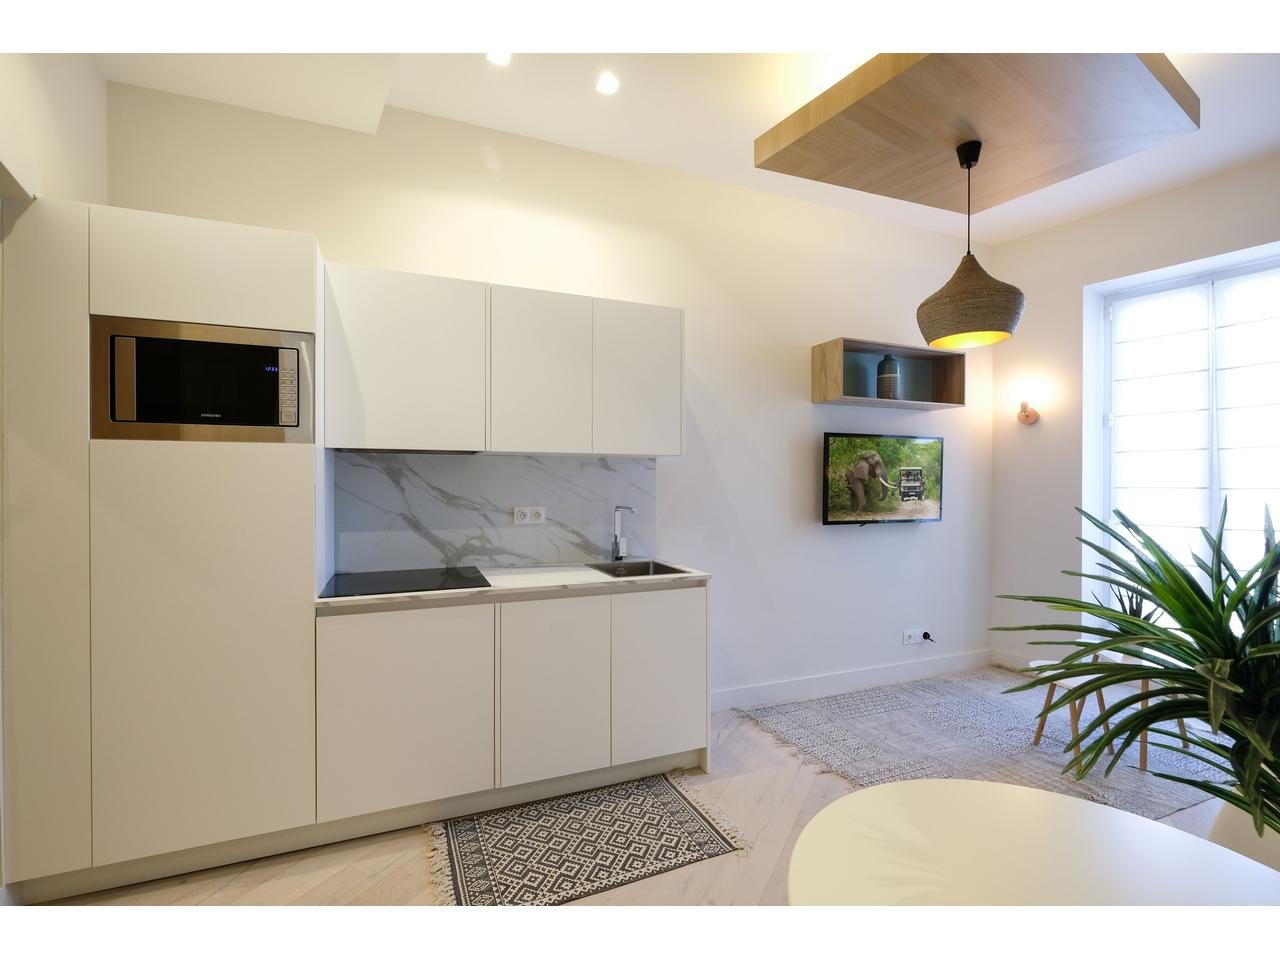 ONE BEDROOM RENOVATED APARTMENT